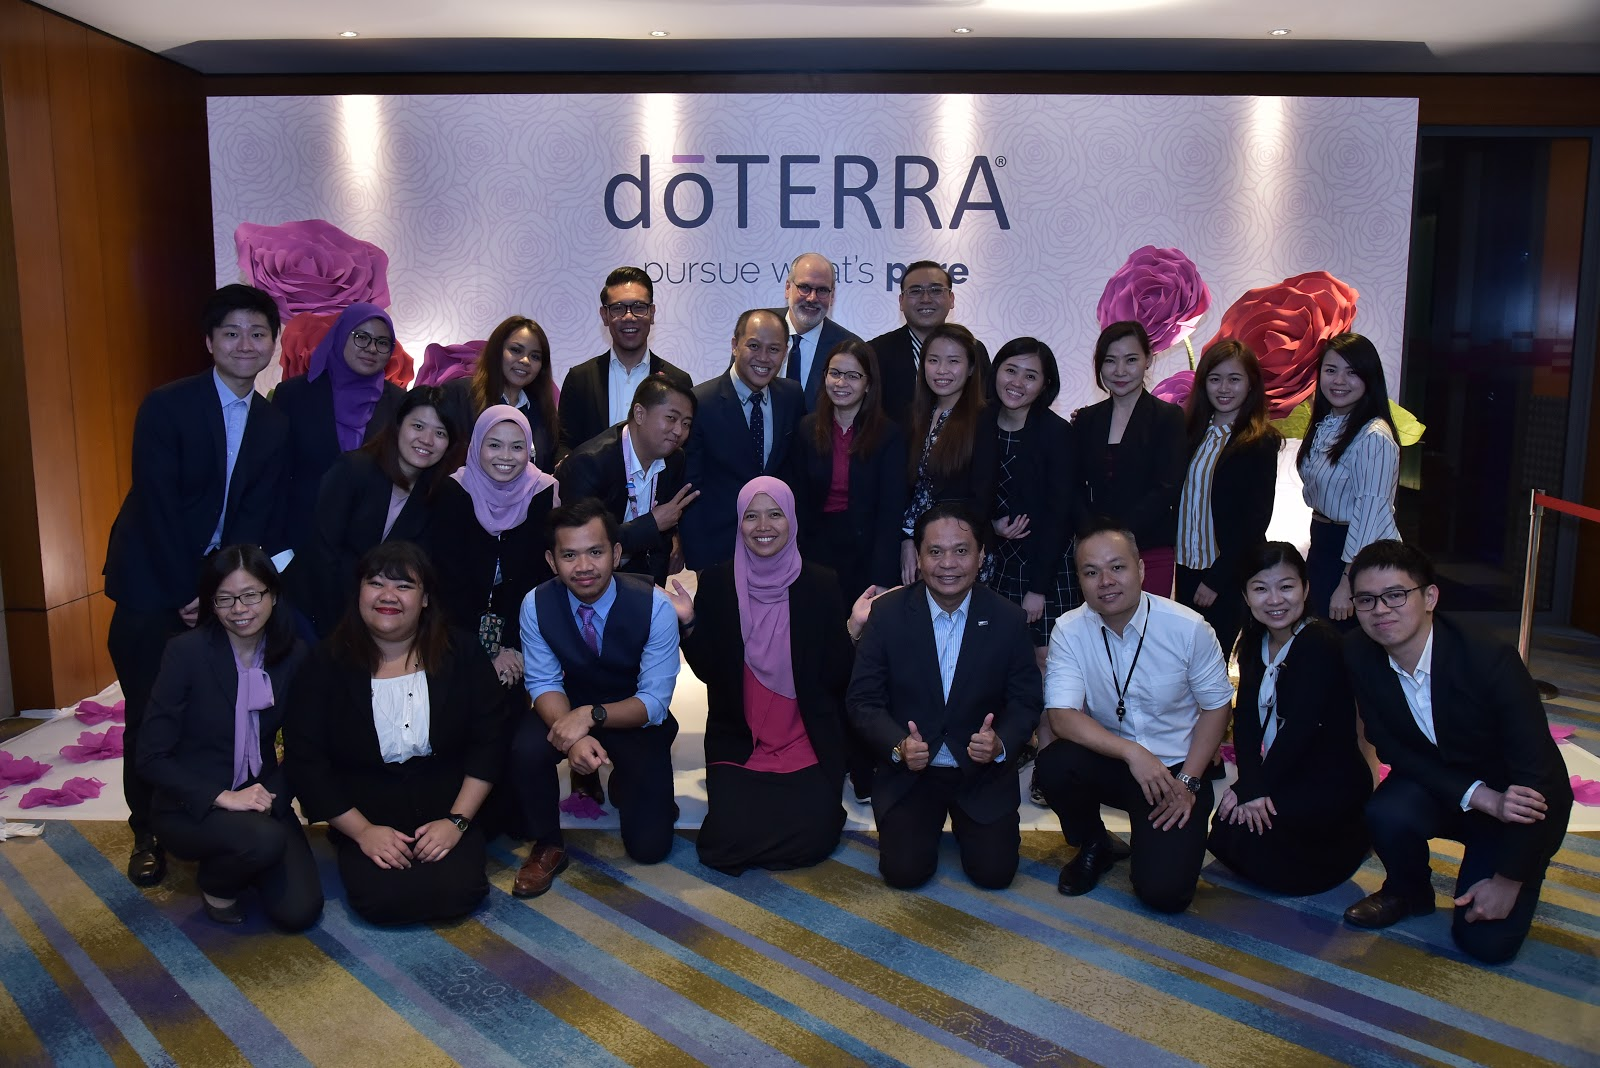 doTERRA Malaysia Pledges RM40,000 to Provide COVID-19 Relief for Affected Communities